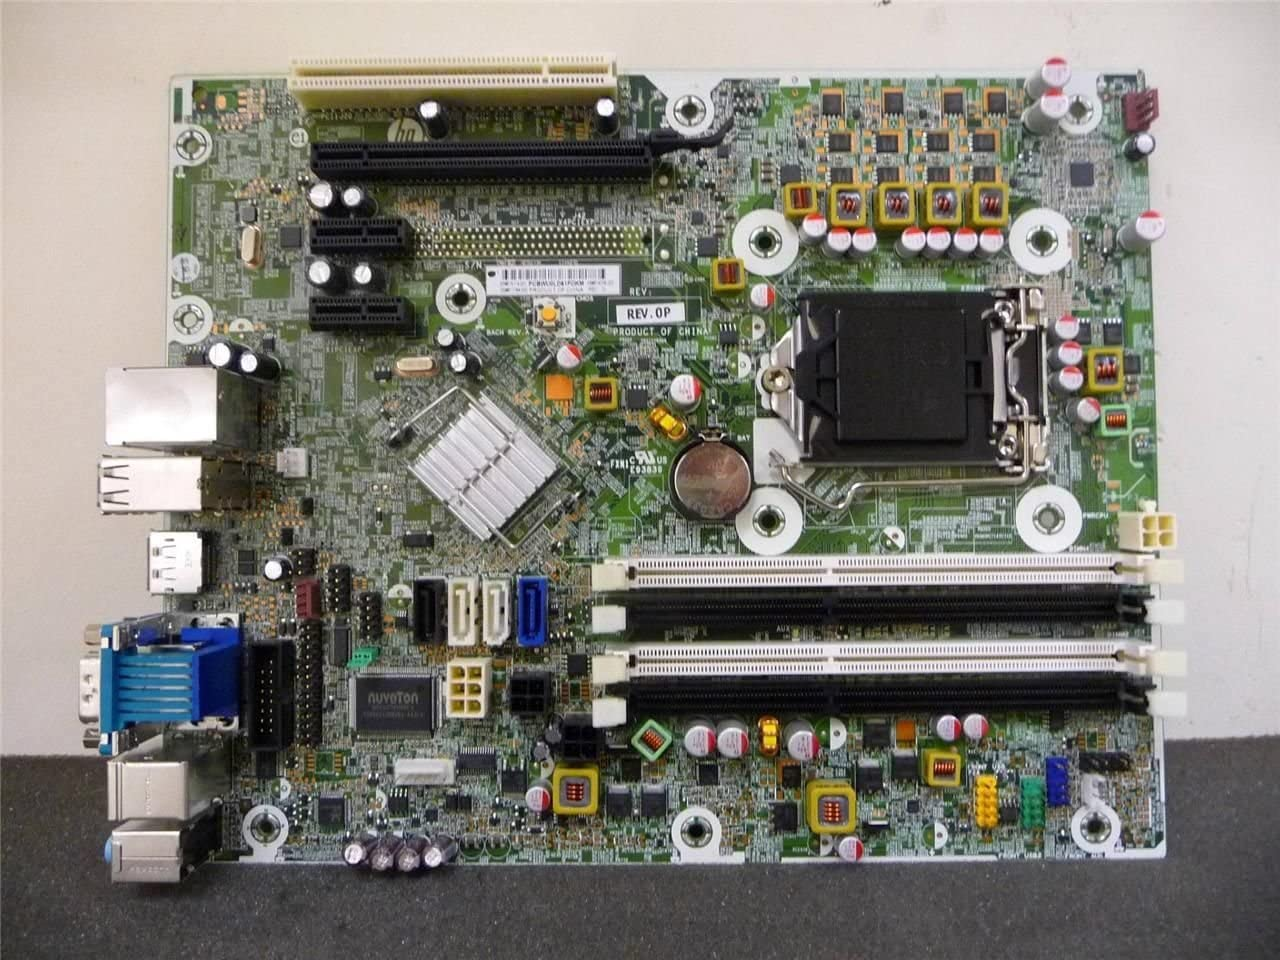 HP 615114-001 System board (motherboard) assembly - Includes Trusted Platform Module (TPM)